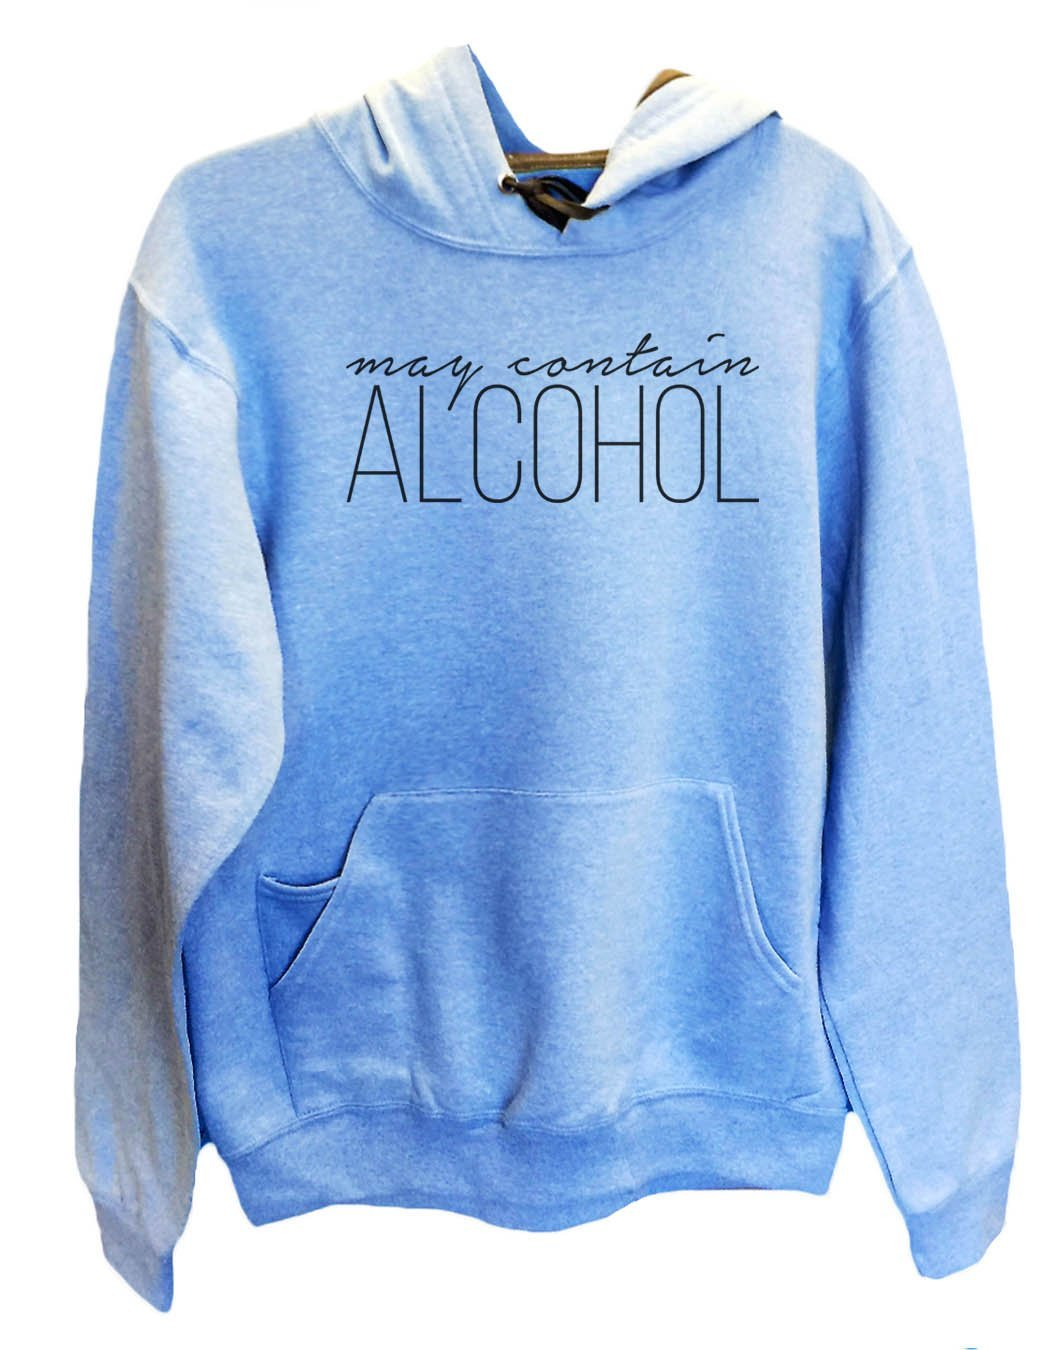 UNISEX HOODIE - May Contain Alcohol - FUNNY MENS AND WOMENS HOODED SWEATSHIRTS - 2165 Funny Shirt